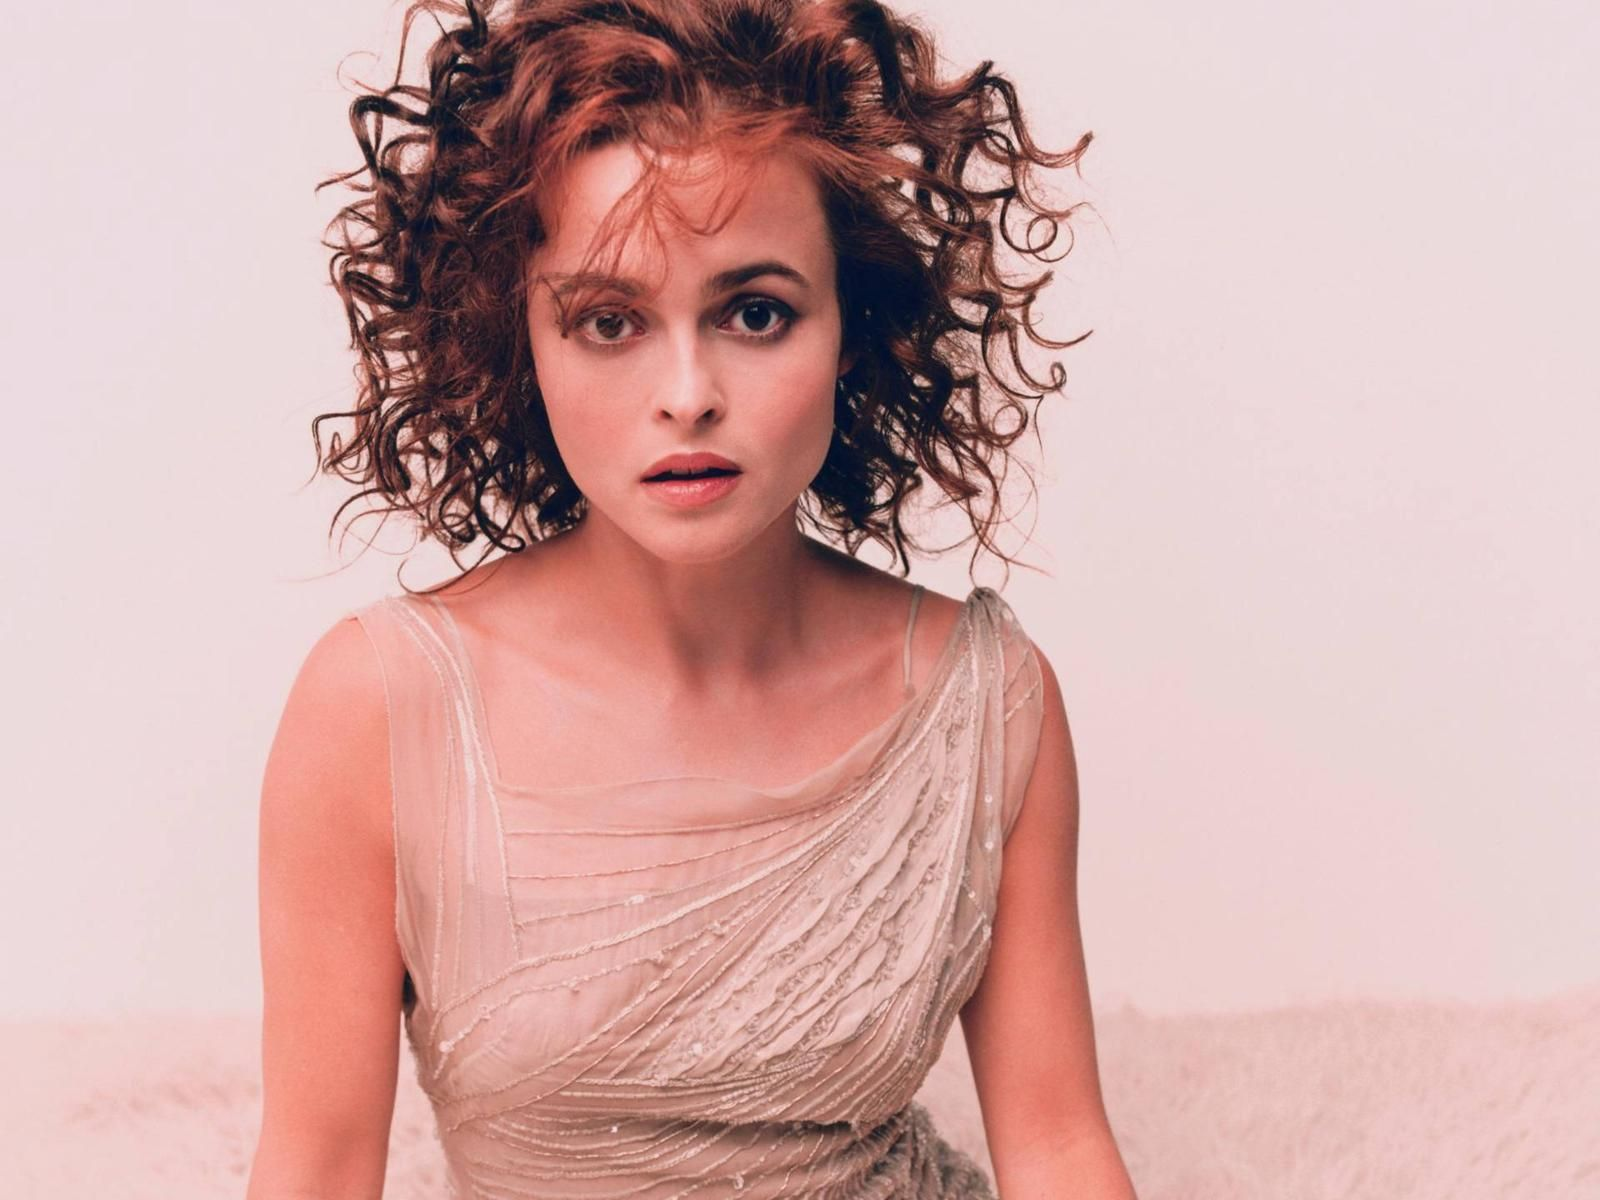 helena bonham carter hot |  carter+hair-hairstyles-formen